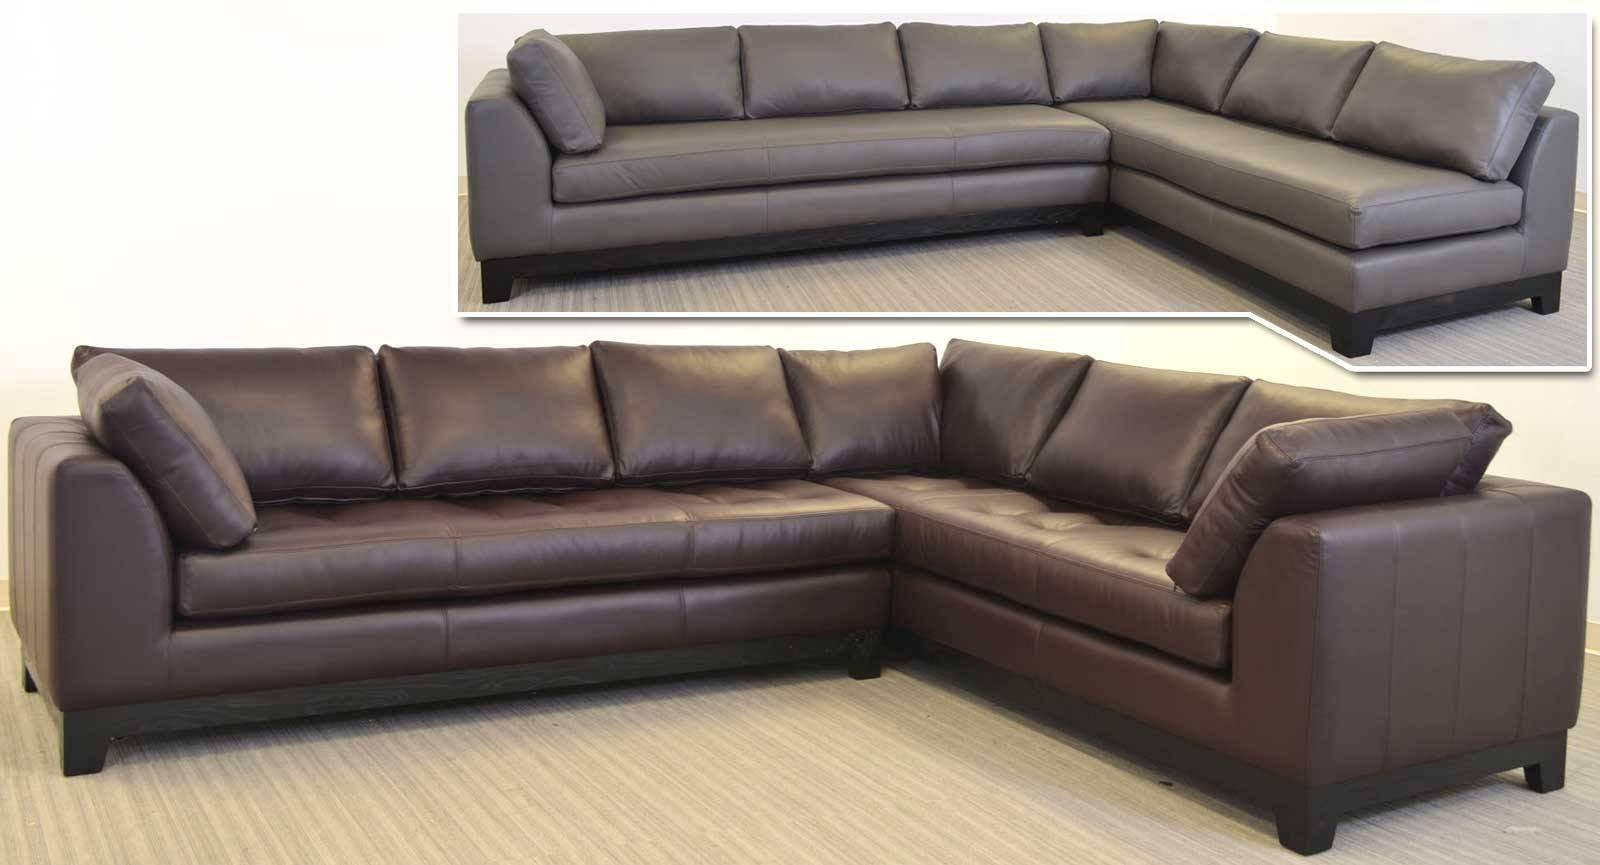 leather sofa cleaning repair company grey images best 30 43 of one cushion sofas